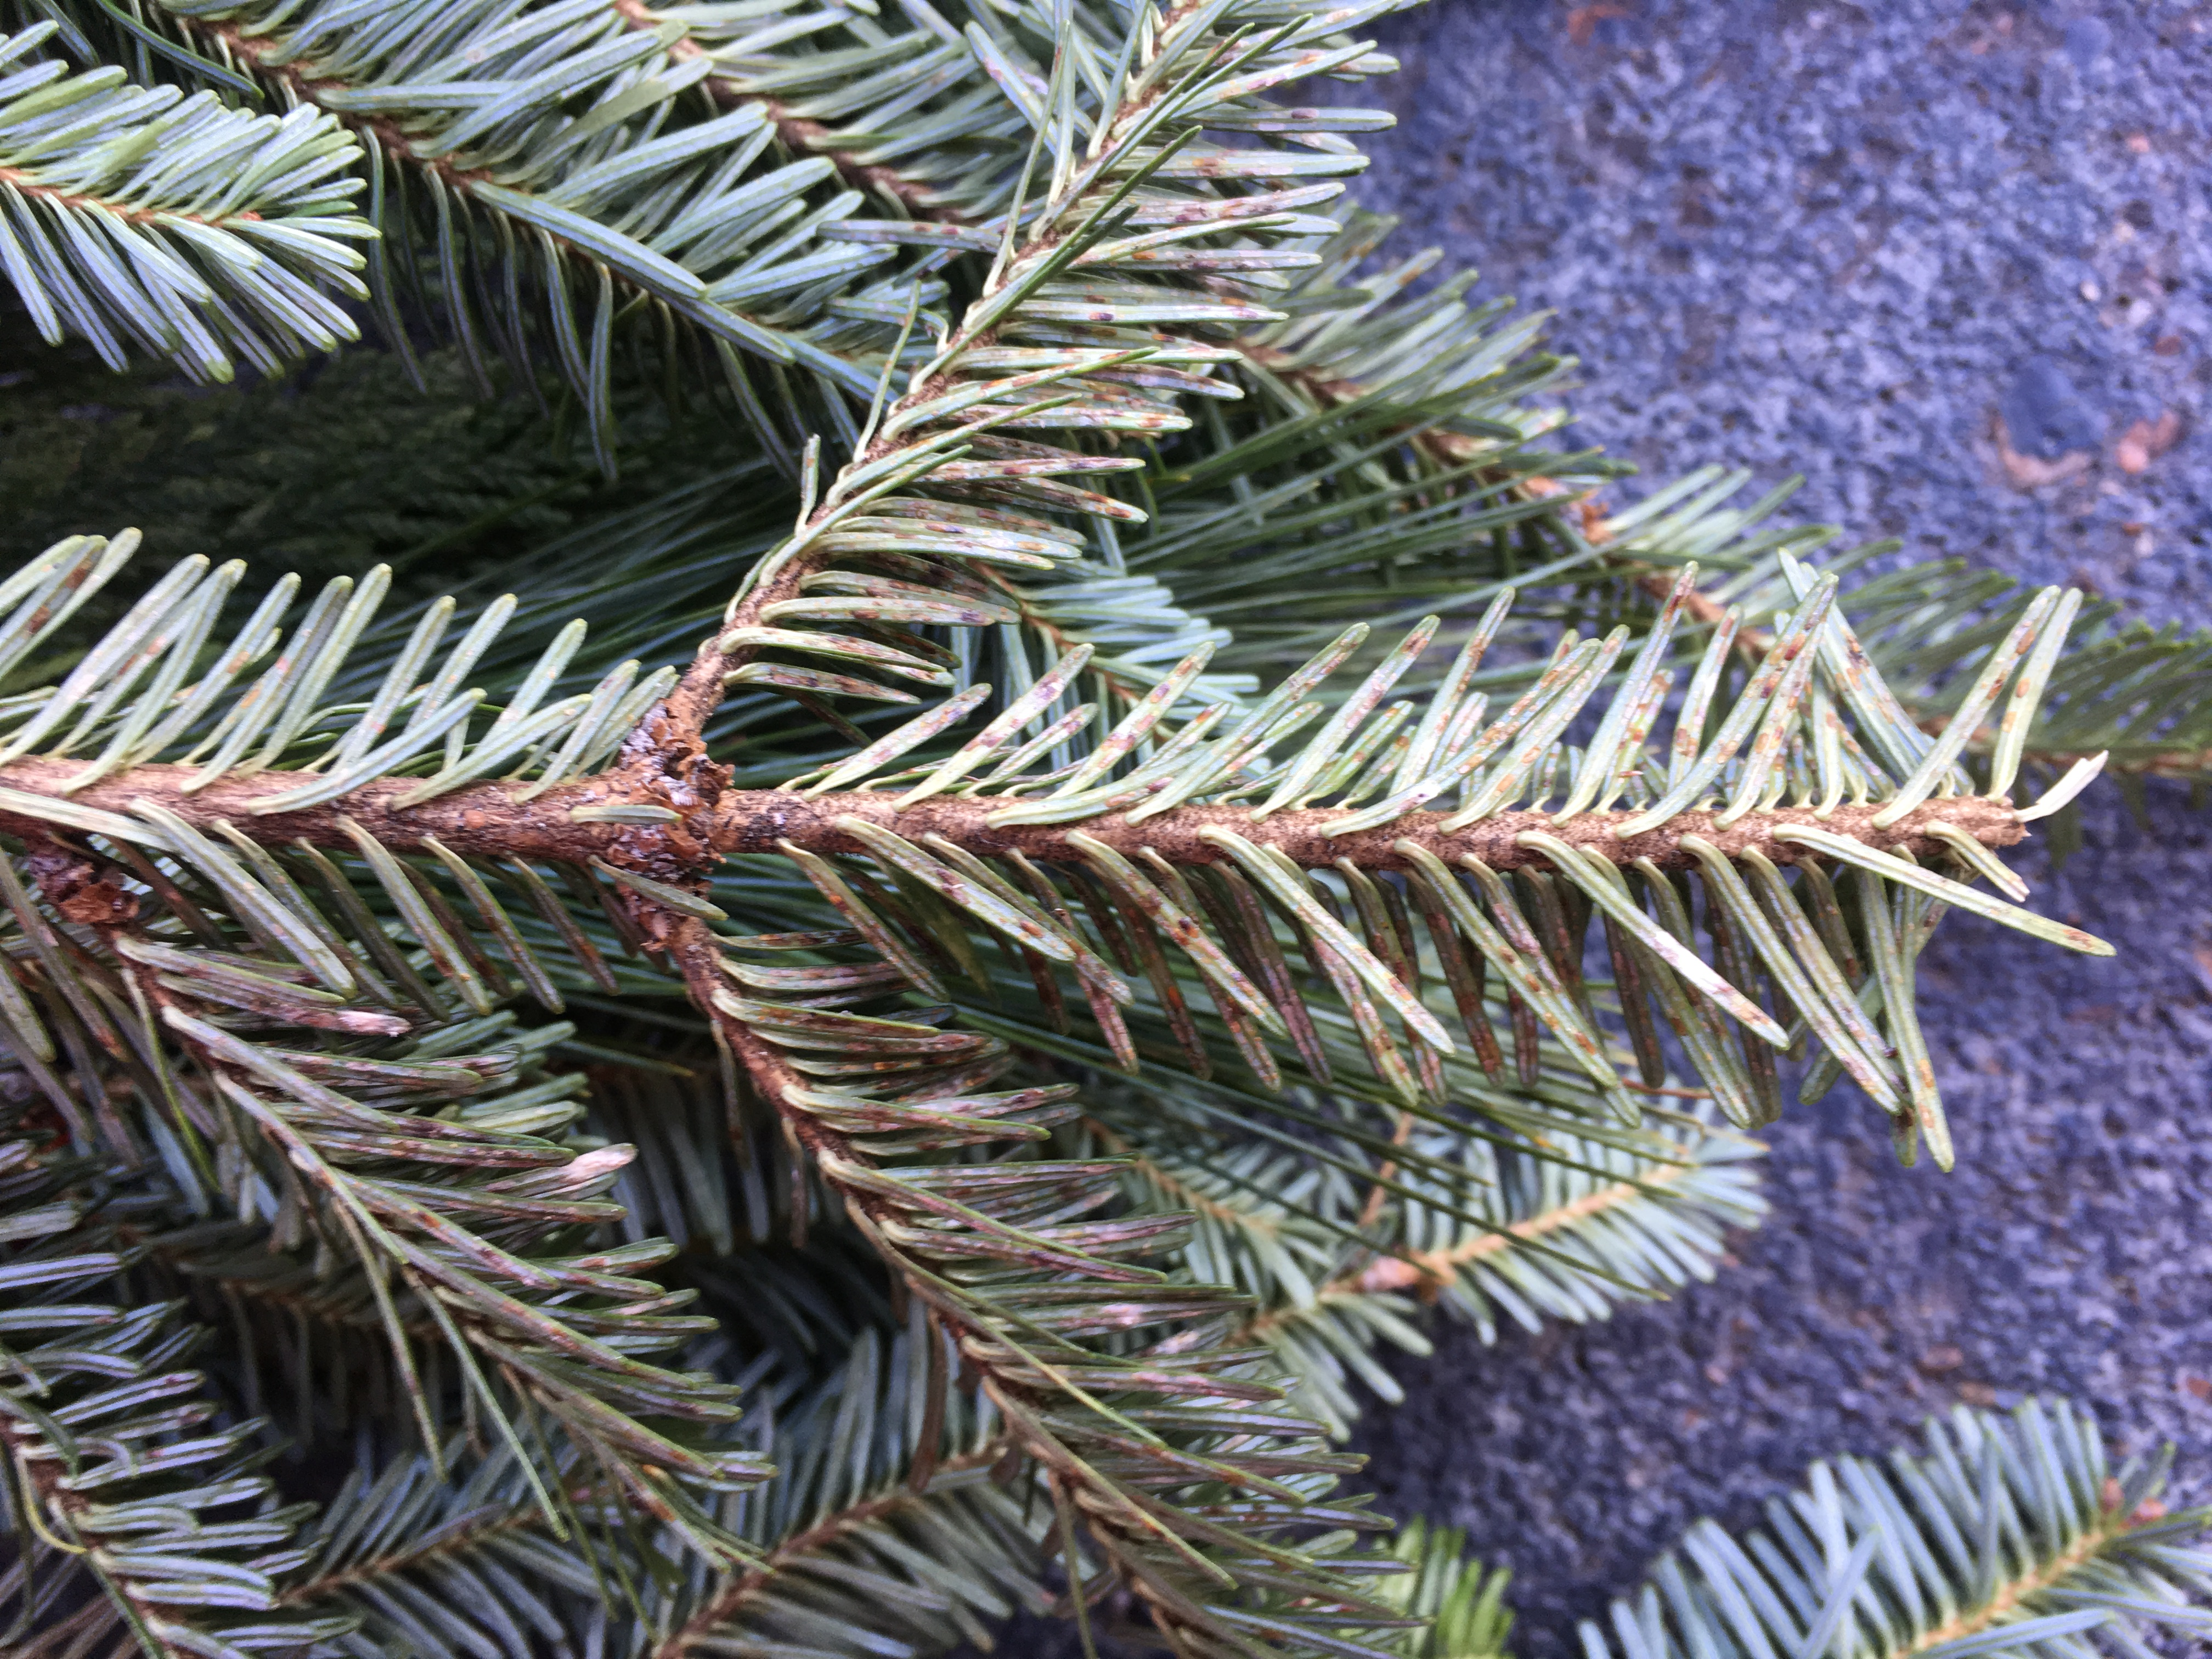 Elongate hemlock scale on the underside of holiday greenery